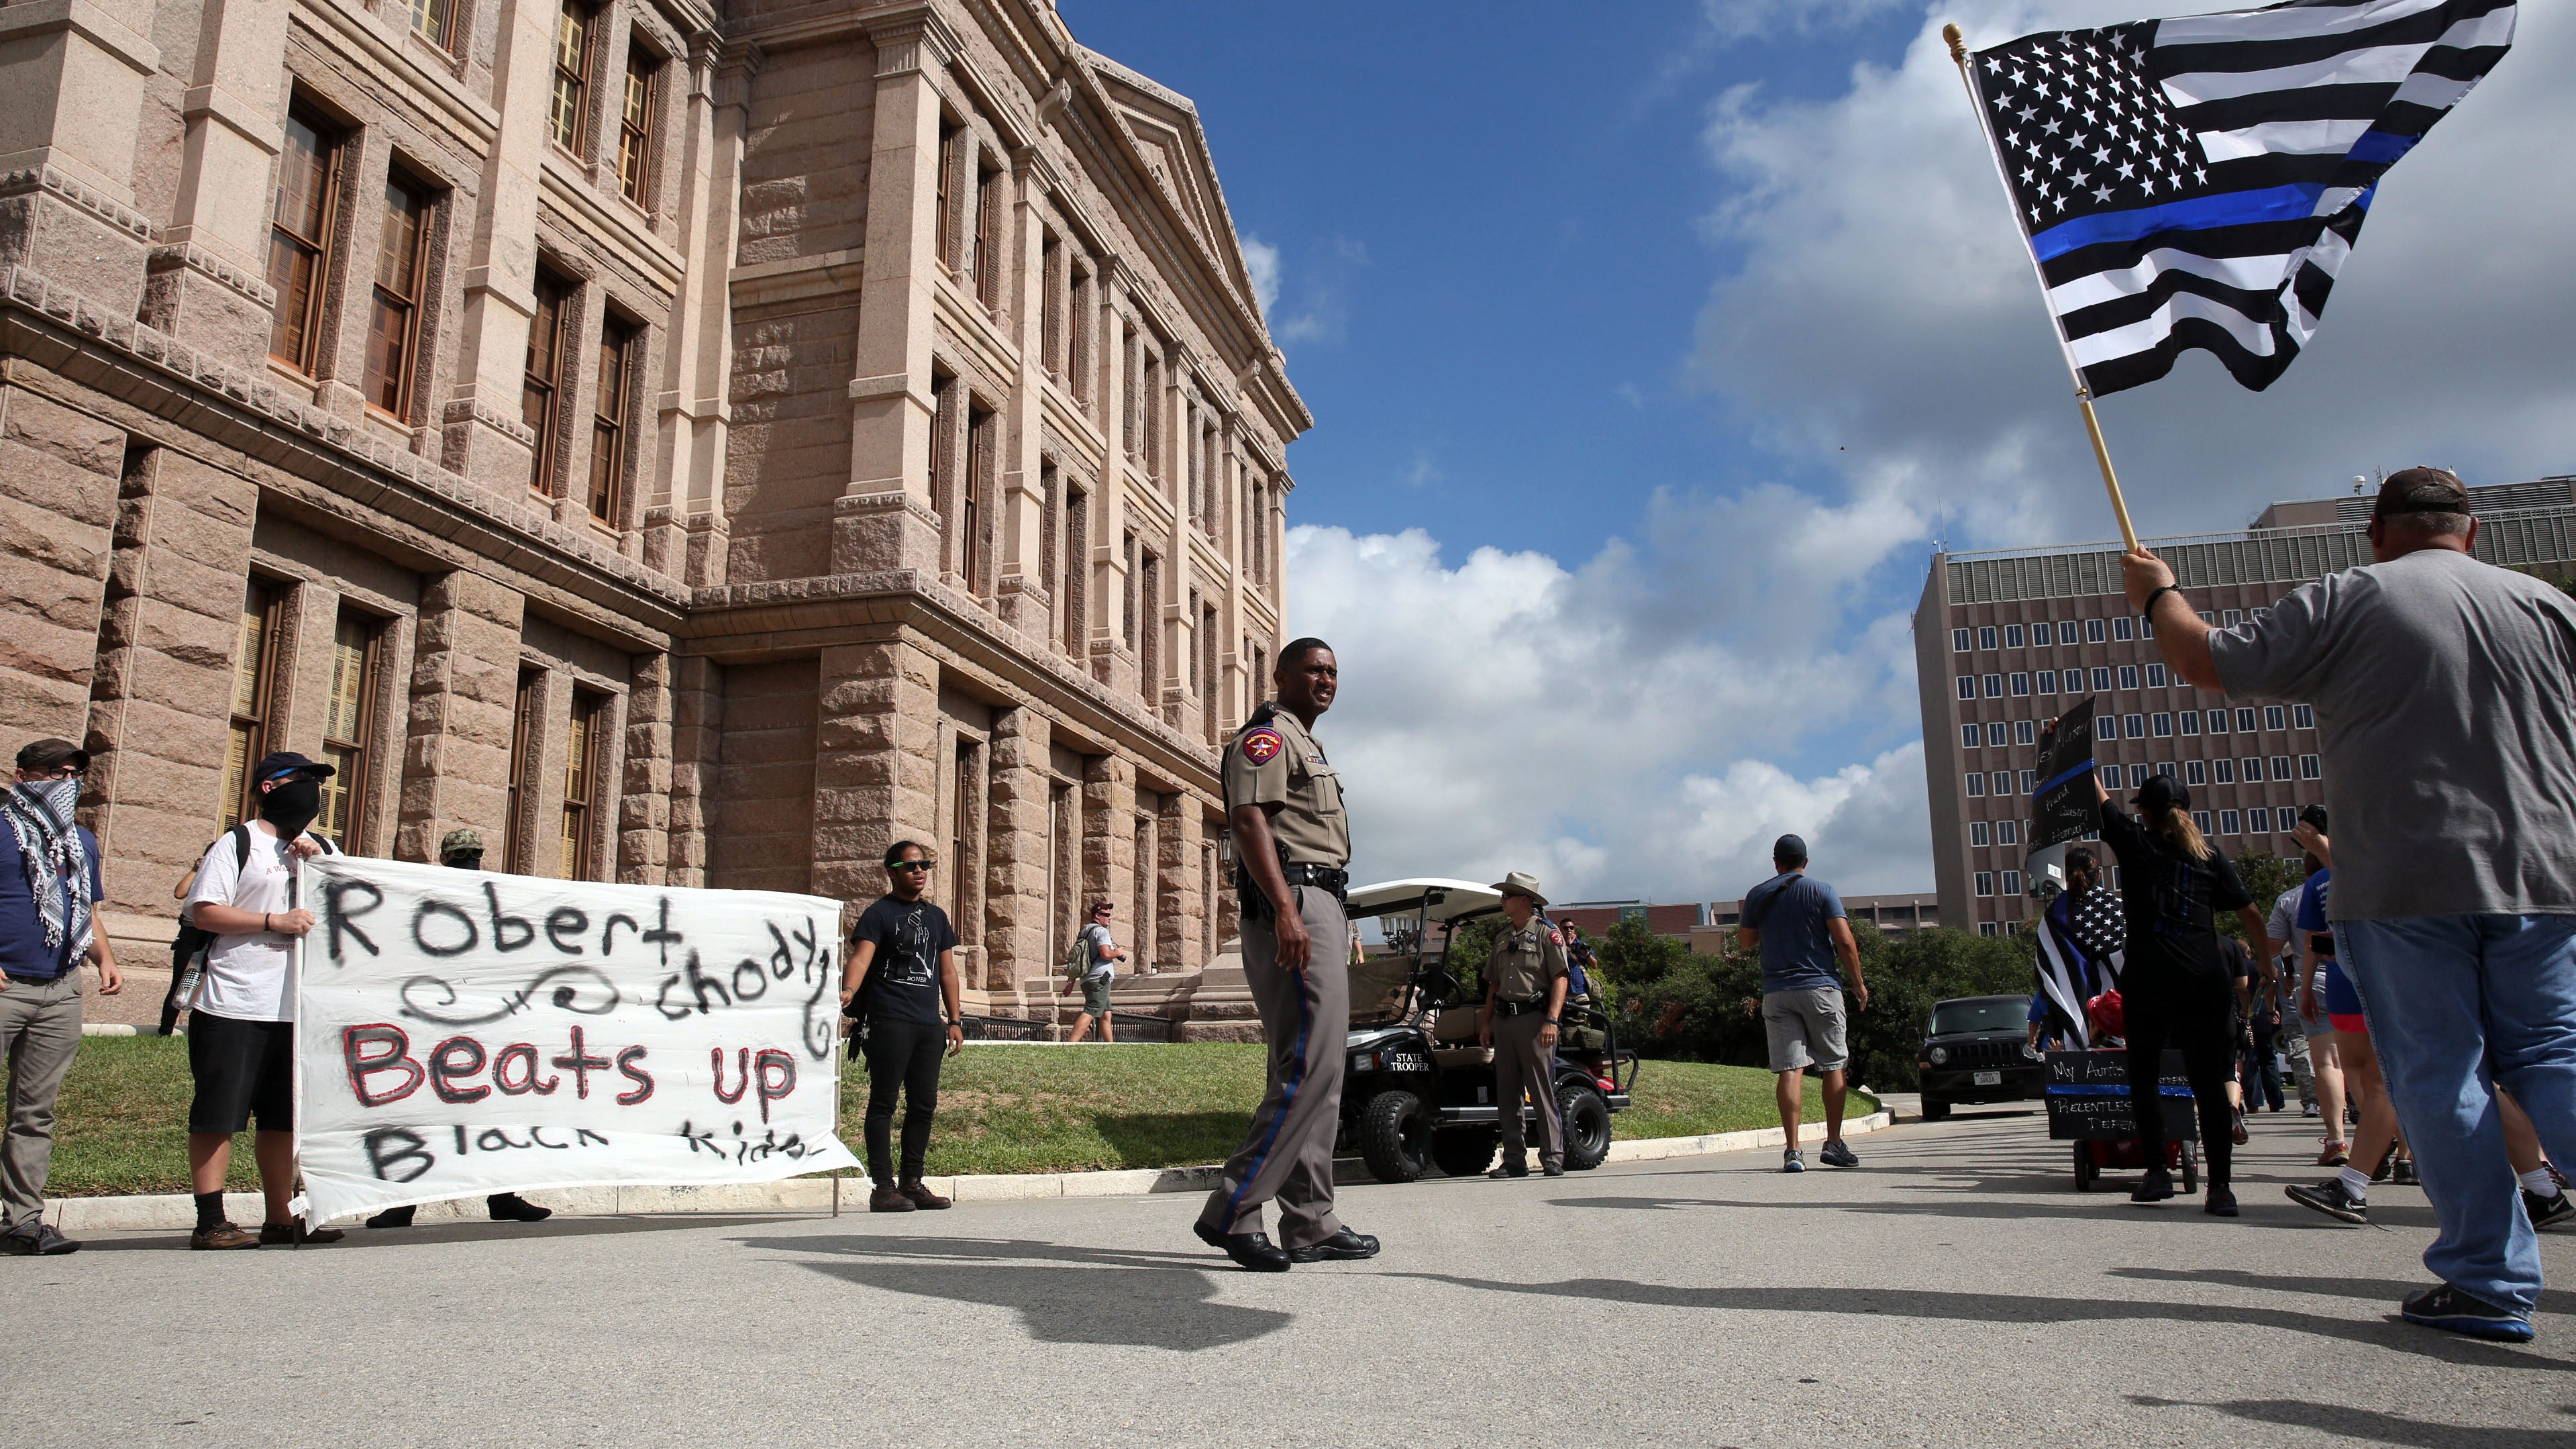 On the morning of Sept. 19, 2015, Texas Department of Public Safety trooper McPherson (who declined to give his first name) kept a watchful eye over separate Black Lives Matter and Police Lives Matter rallies that converged at the State Capitol building in Austin, TX.